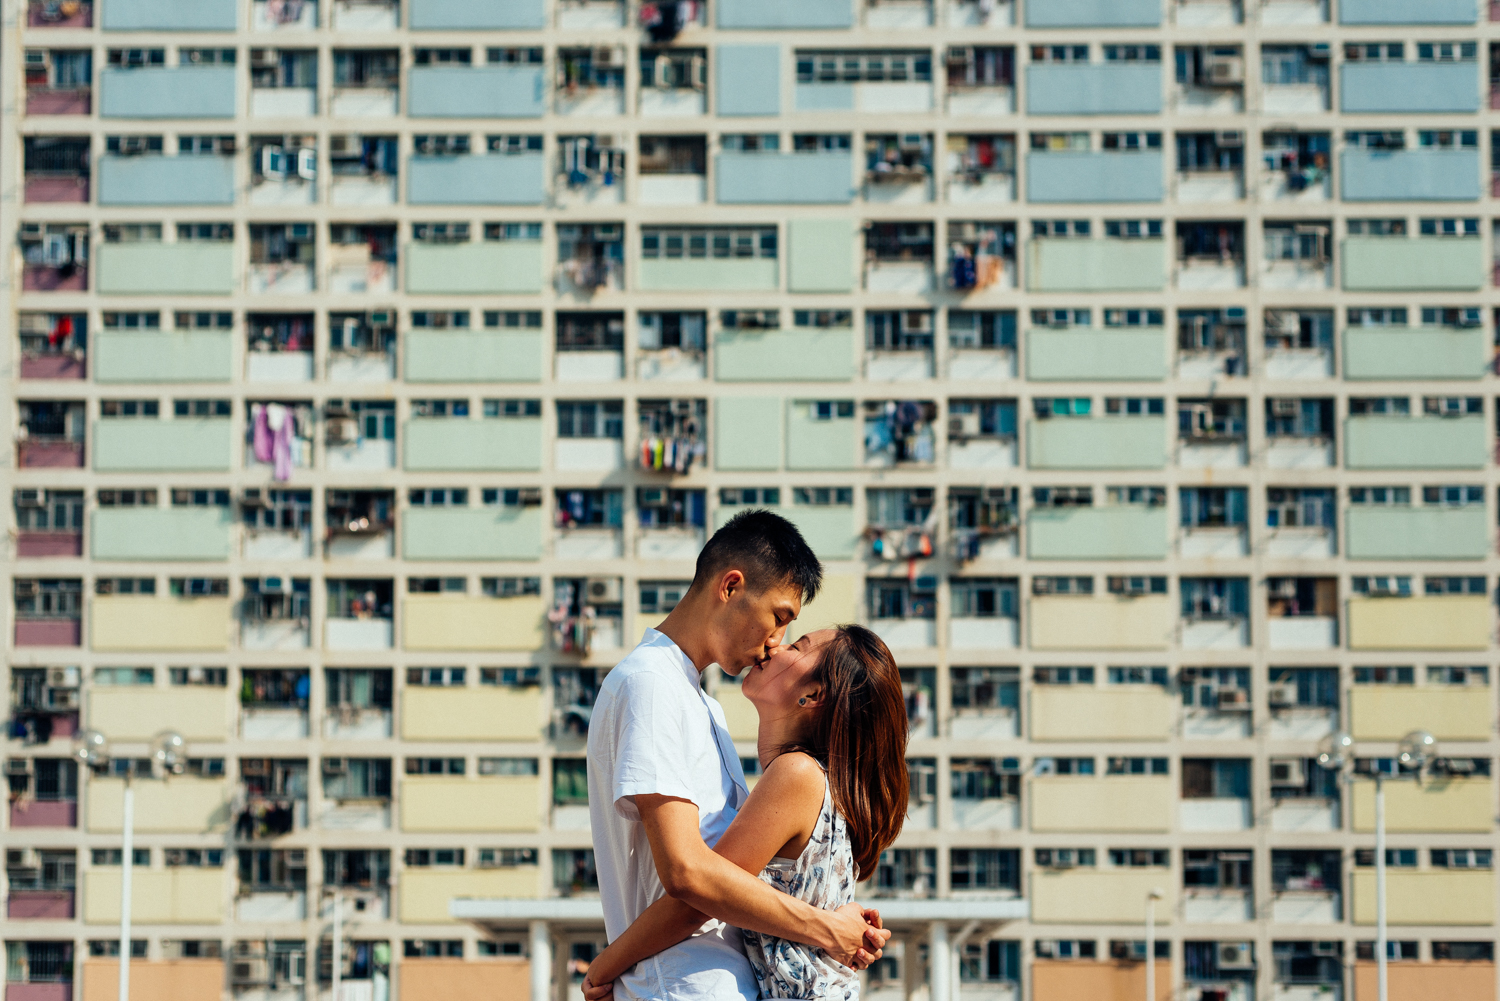 Hong_Kong_Kowloon_Destination_Engagement_Shoot-70.jpeg